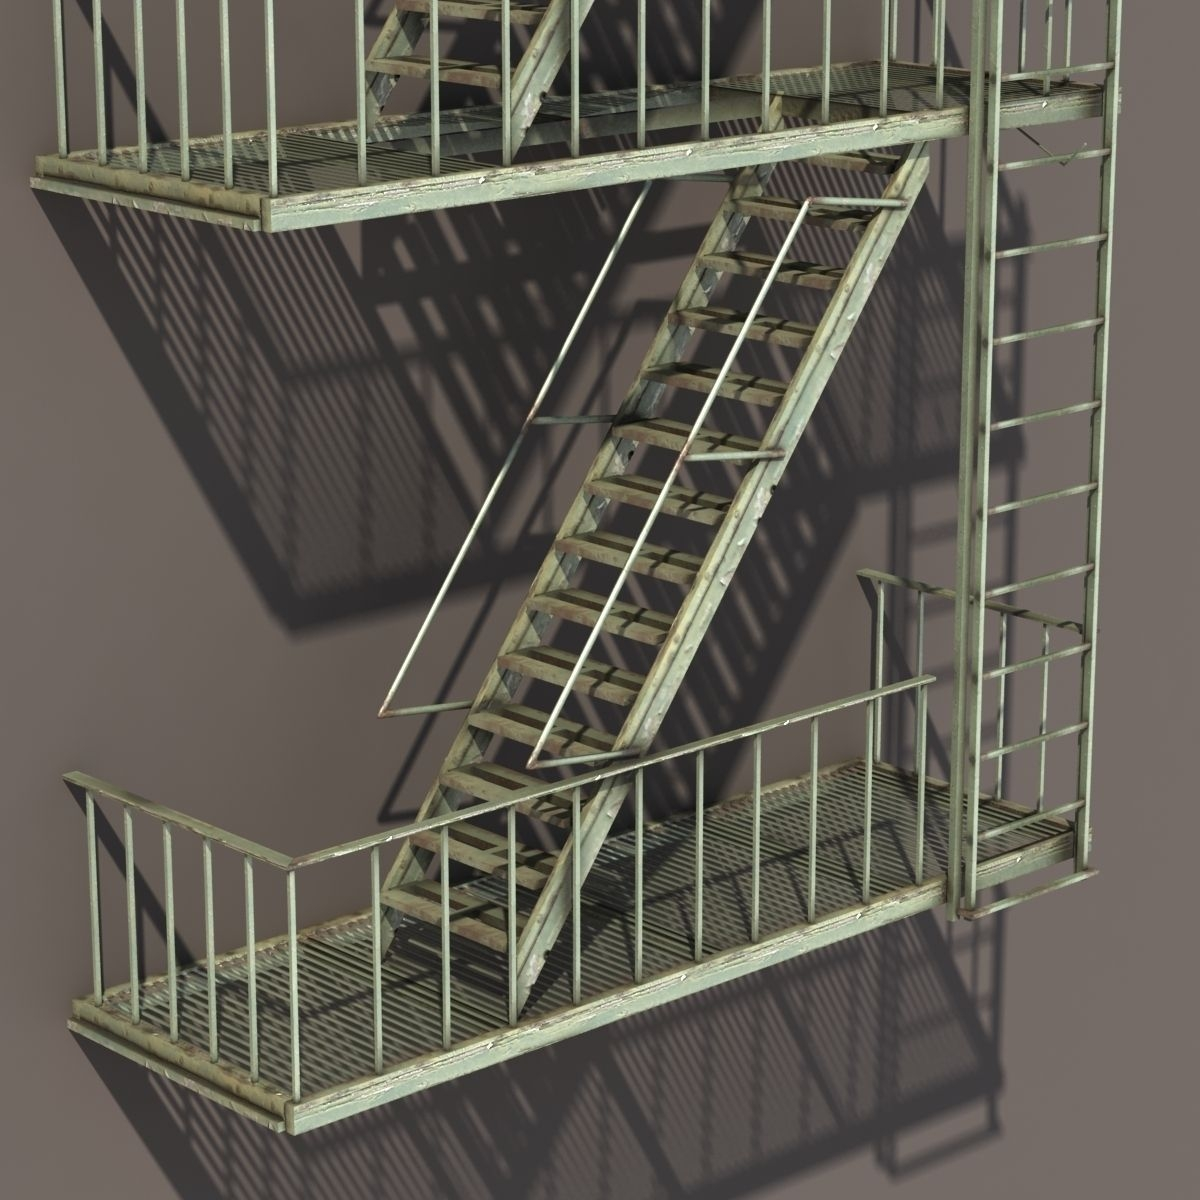 Fire Escape Stairs Low Poly 3D Model Cgtrader | Metal Fire Escape Stairs For Sale | Low Poly | Stair Treads | Building | Wrought Iron | Bim Cad